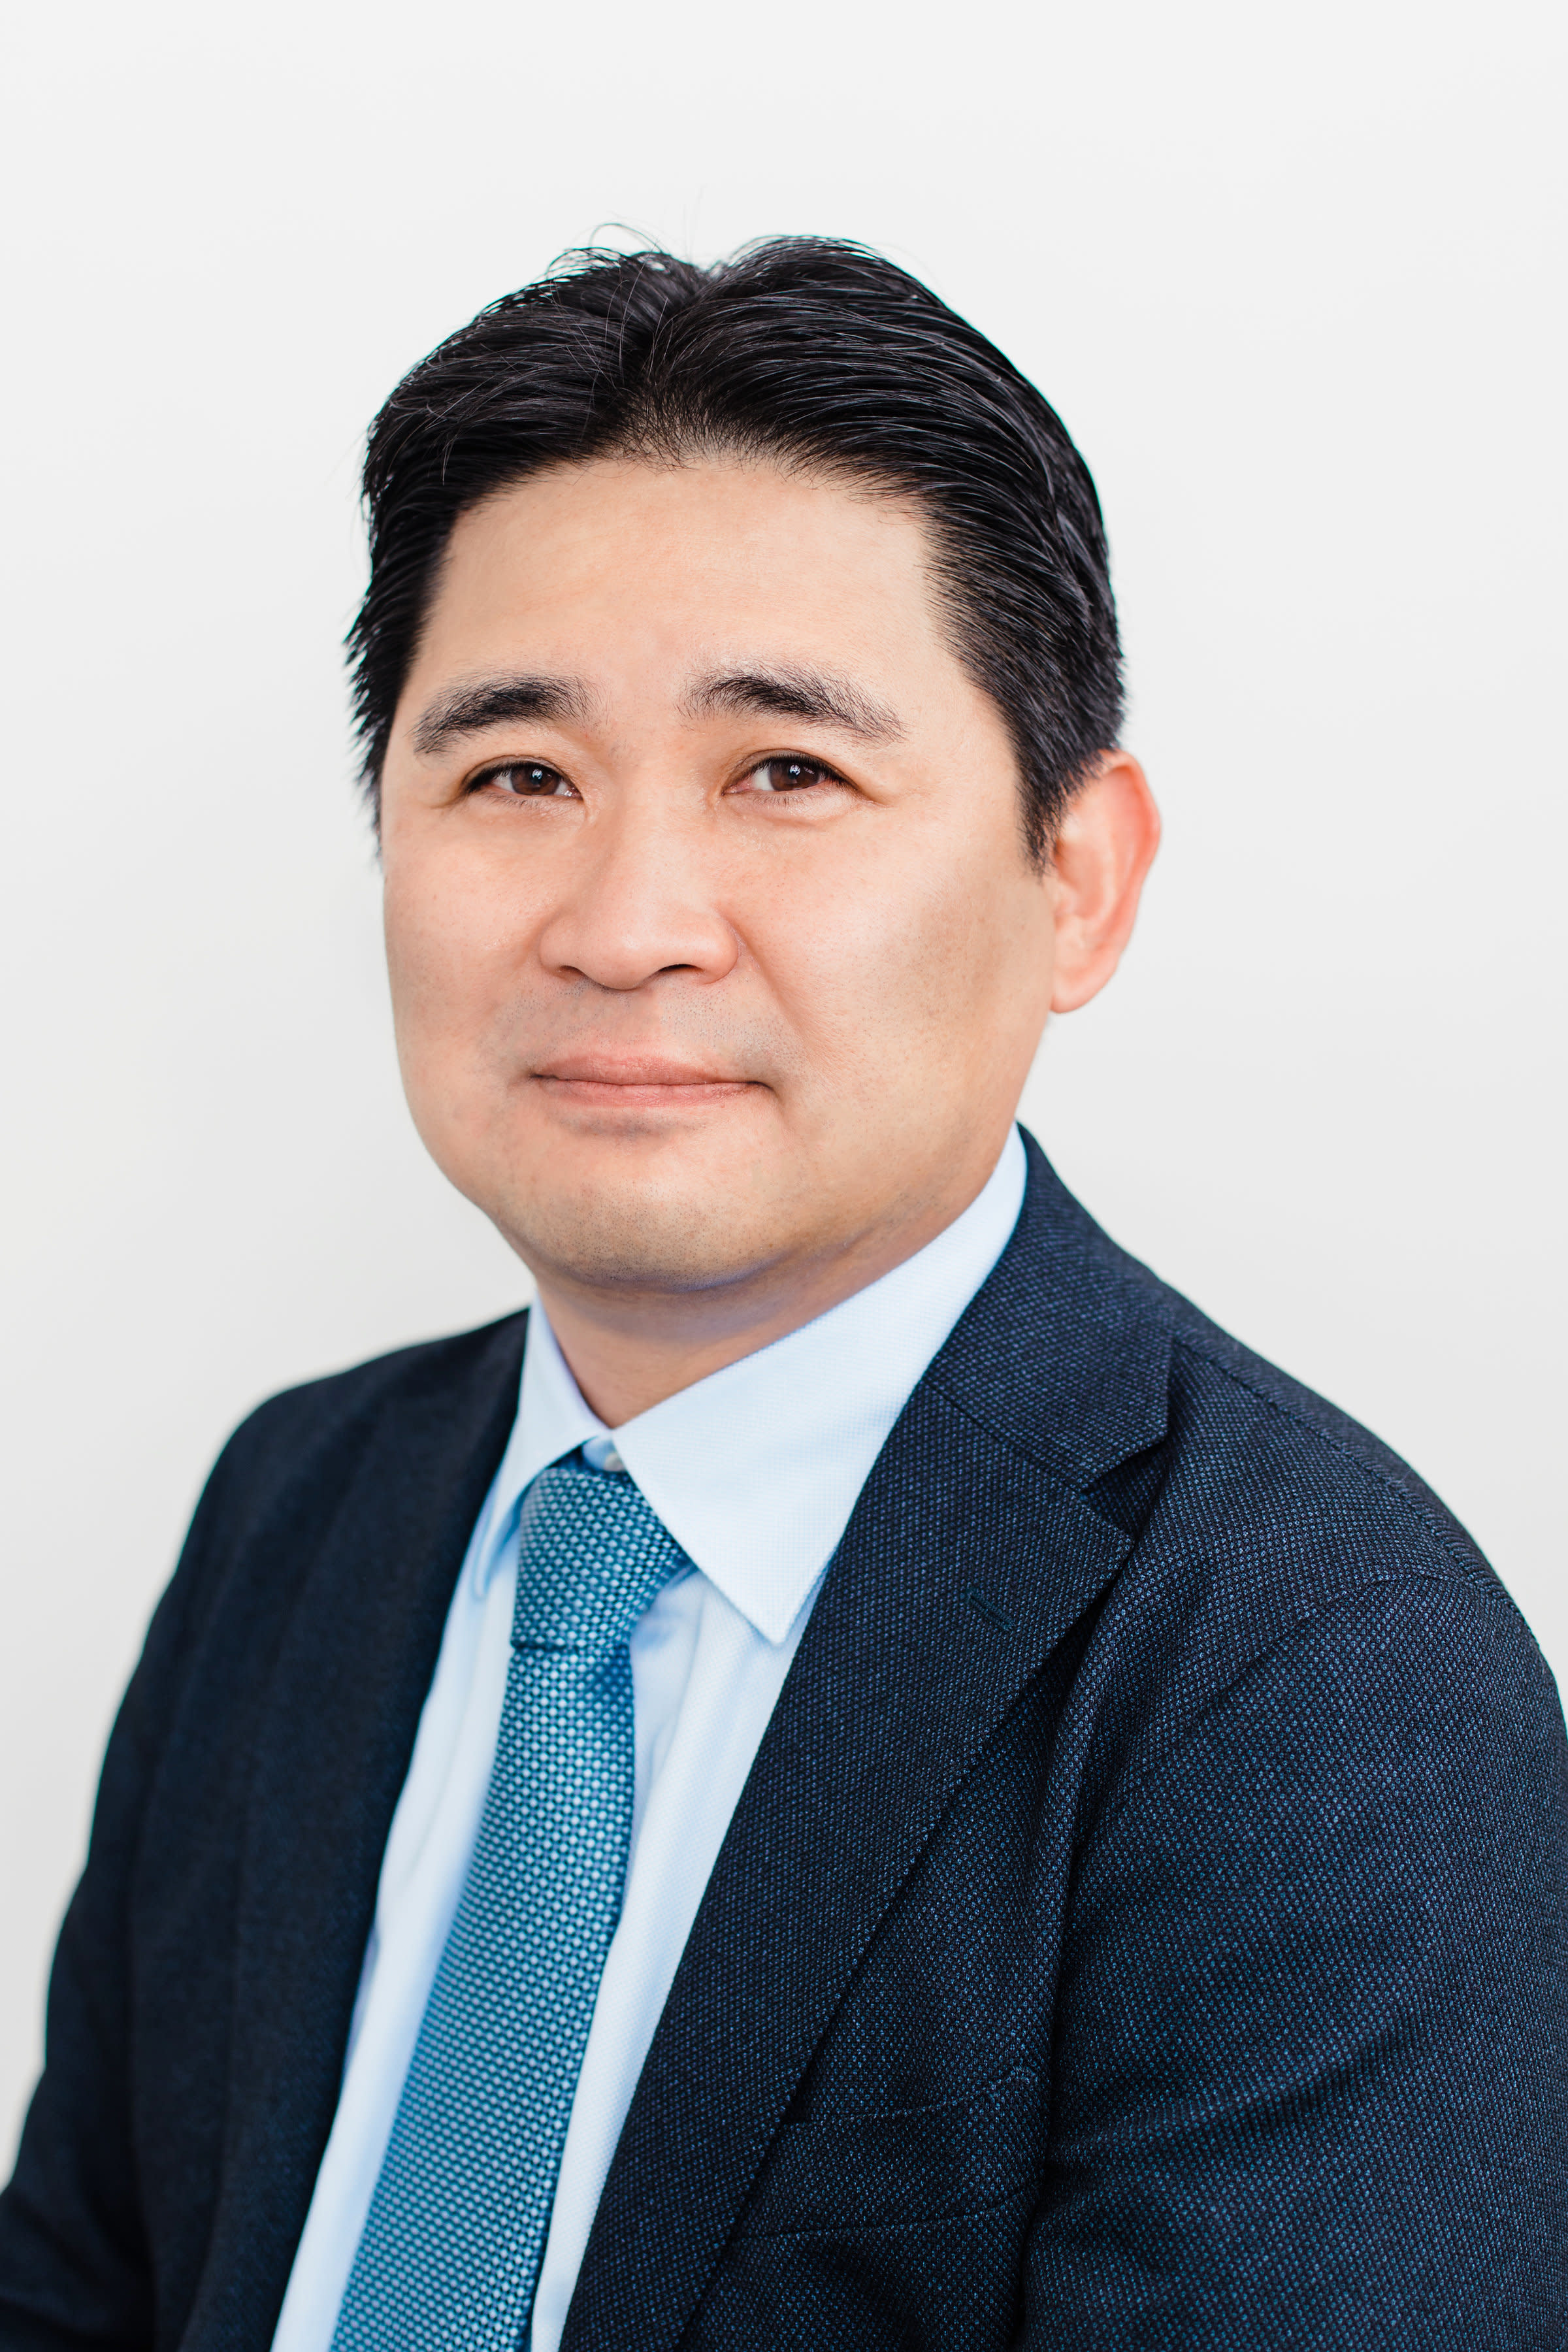 Kats Murakami Global Business Development Leader Headshot